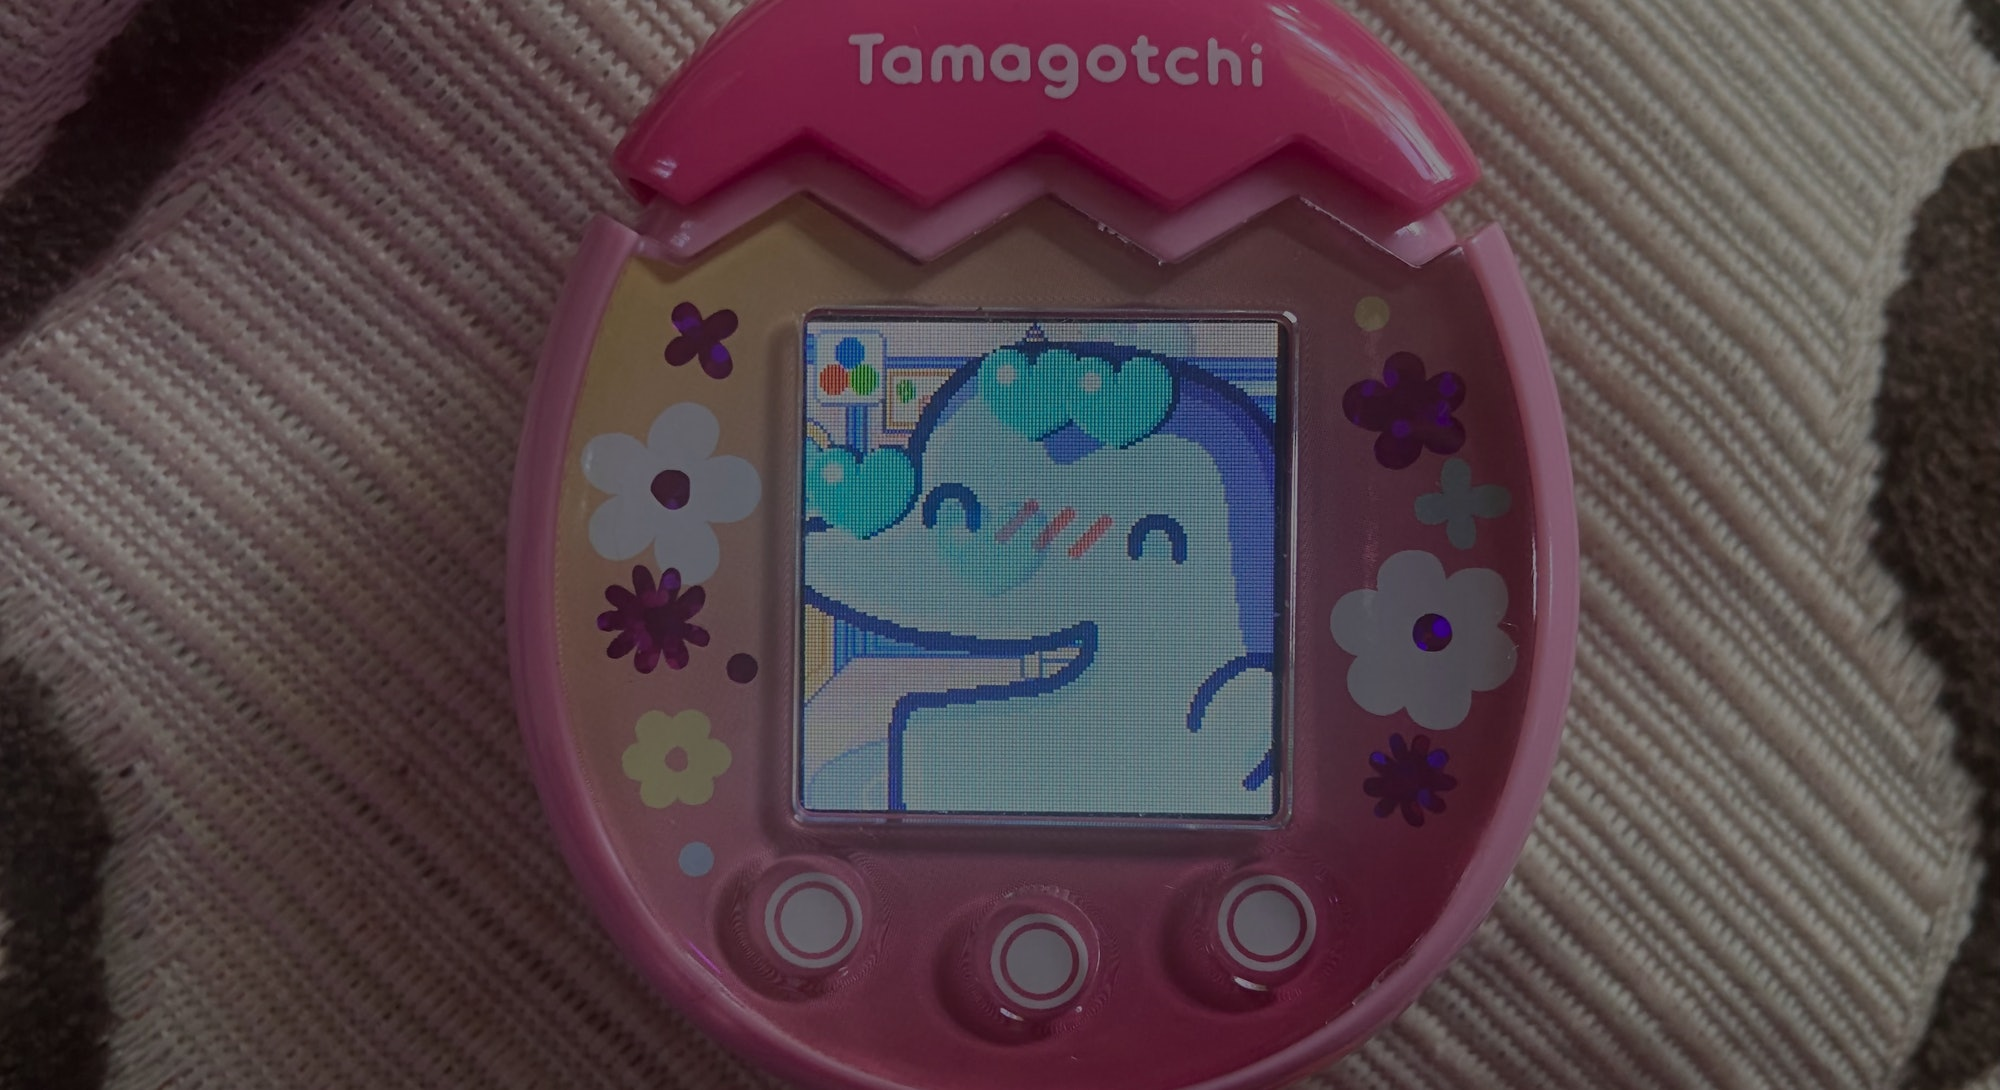 A pink Tamagotchi Pix is pictured with the character Ginjirotchi up close looking happy